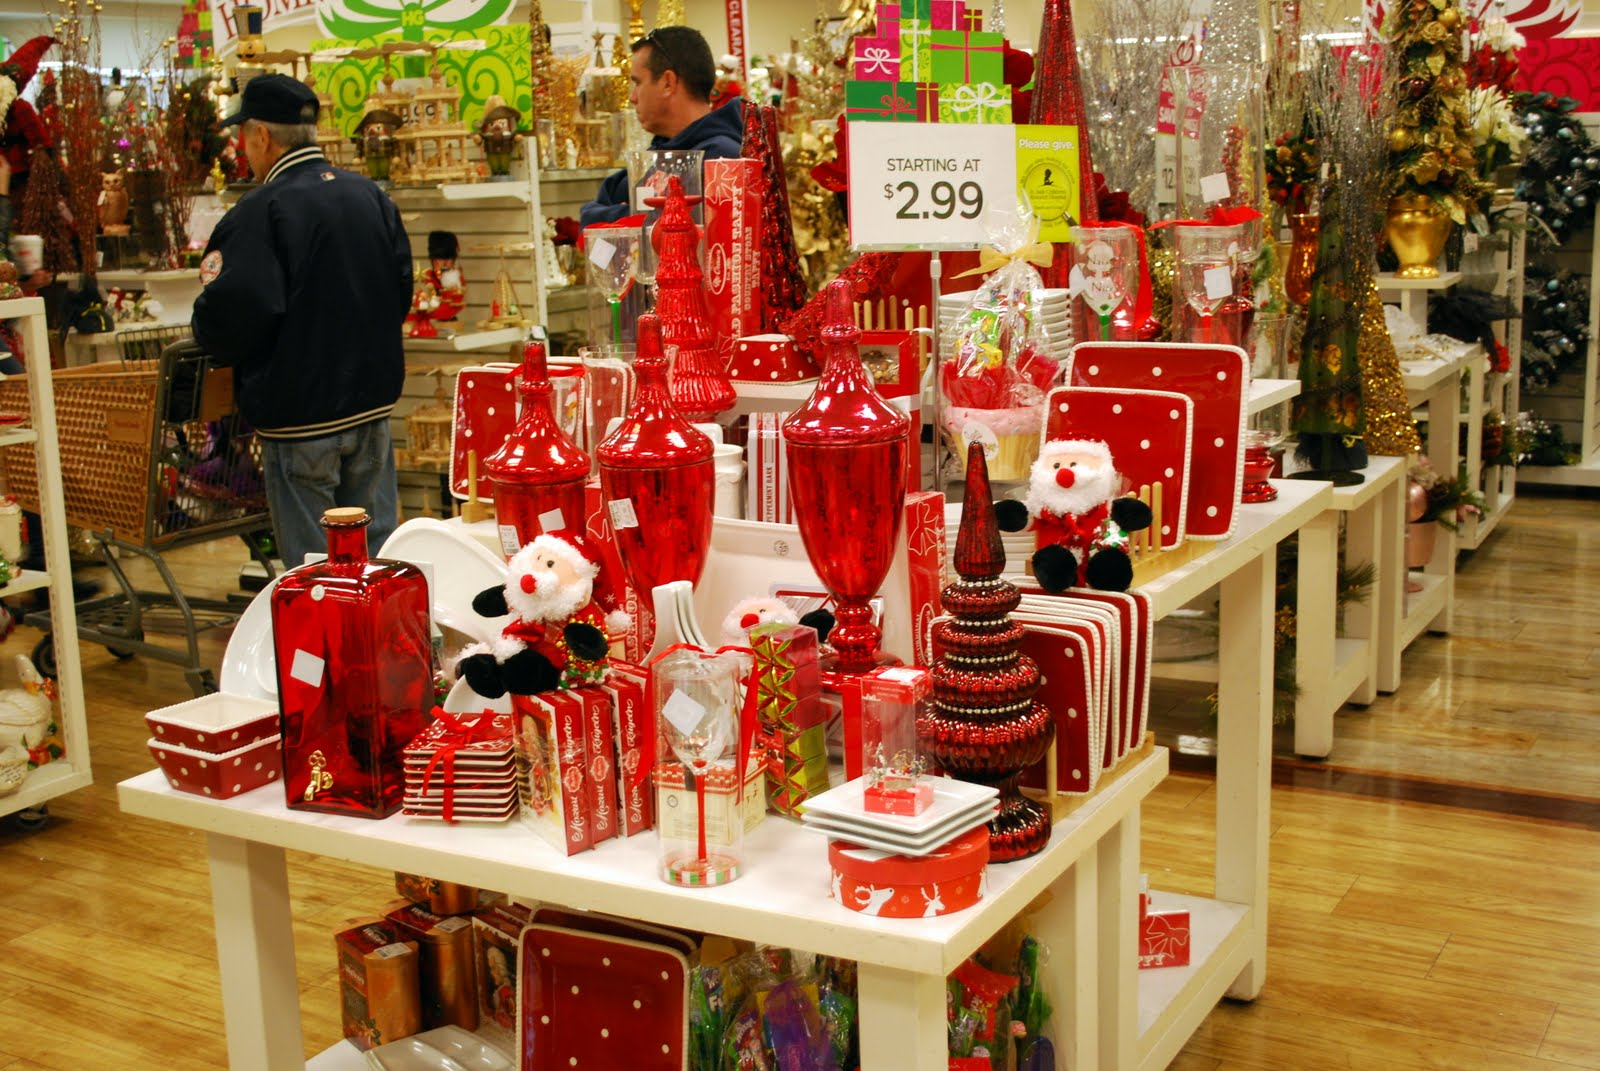 Just look at this delightful grouping of red holiday items available in my HomeGoods  store this past weekend in. Mille Fiori Favoriti  HomeGoods for the Holidays